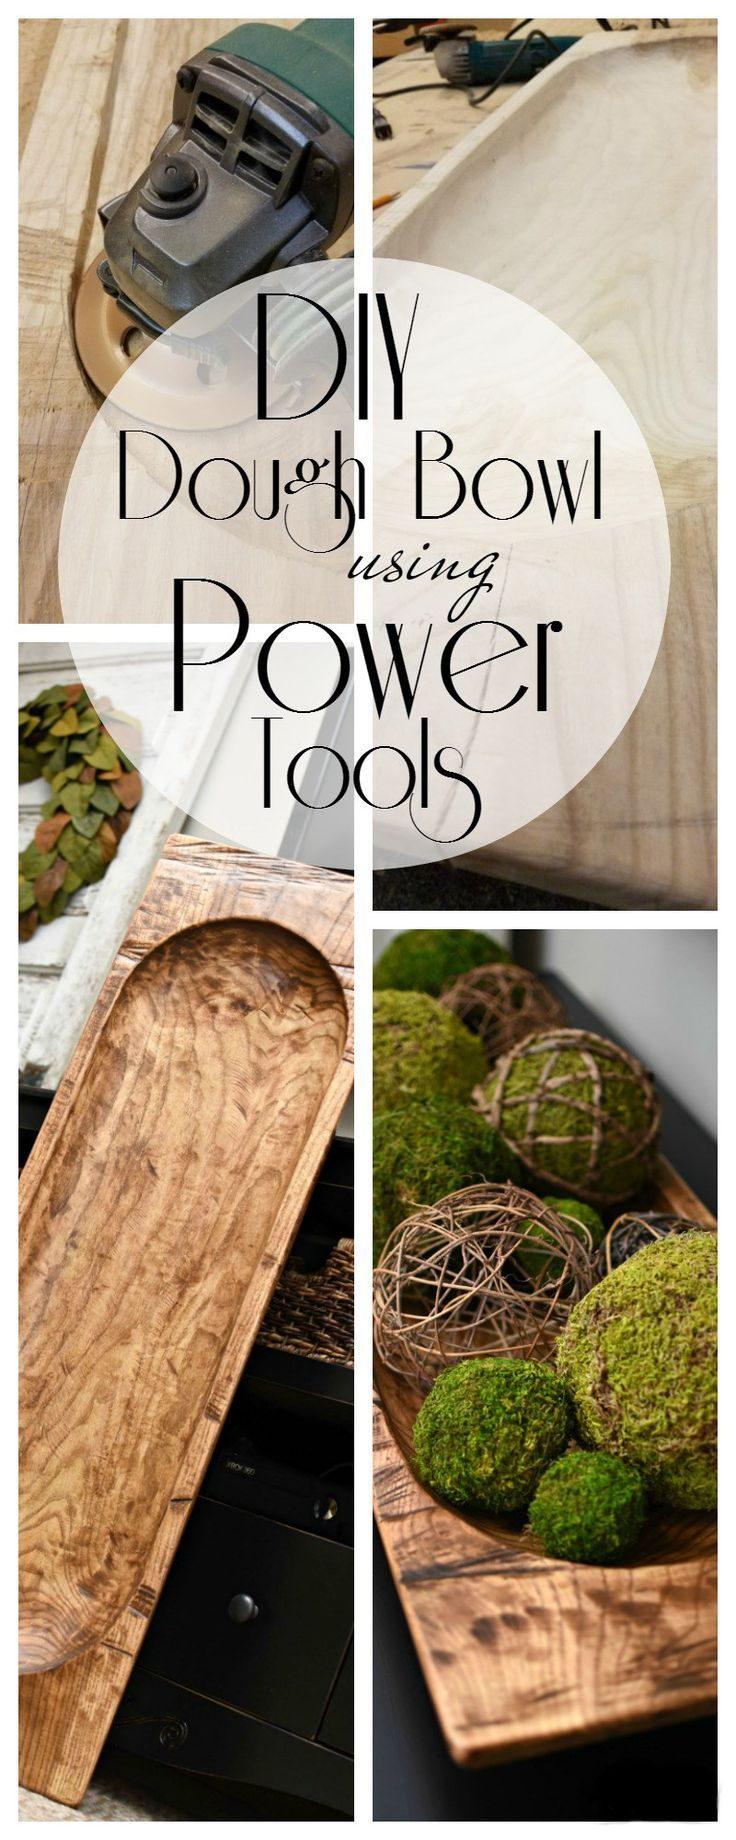 Make your own DIY Dough Bowl using power tools that looks like an antique| awonderfulthought.com